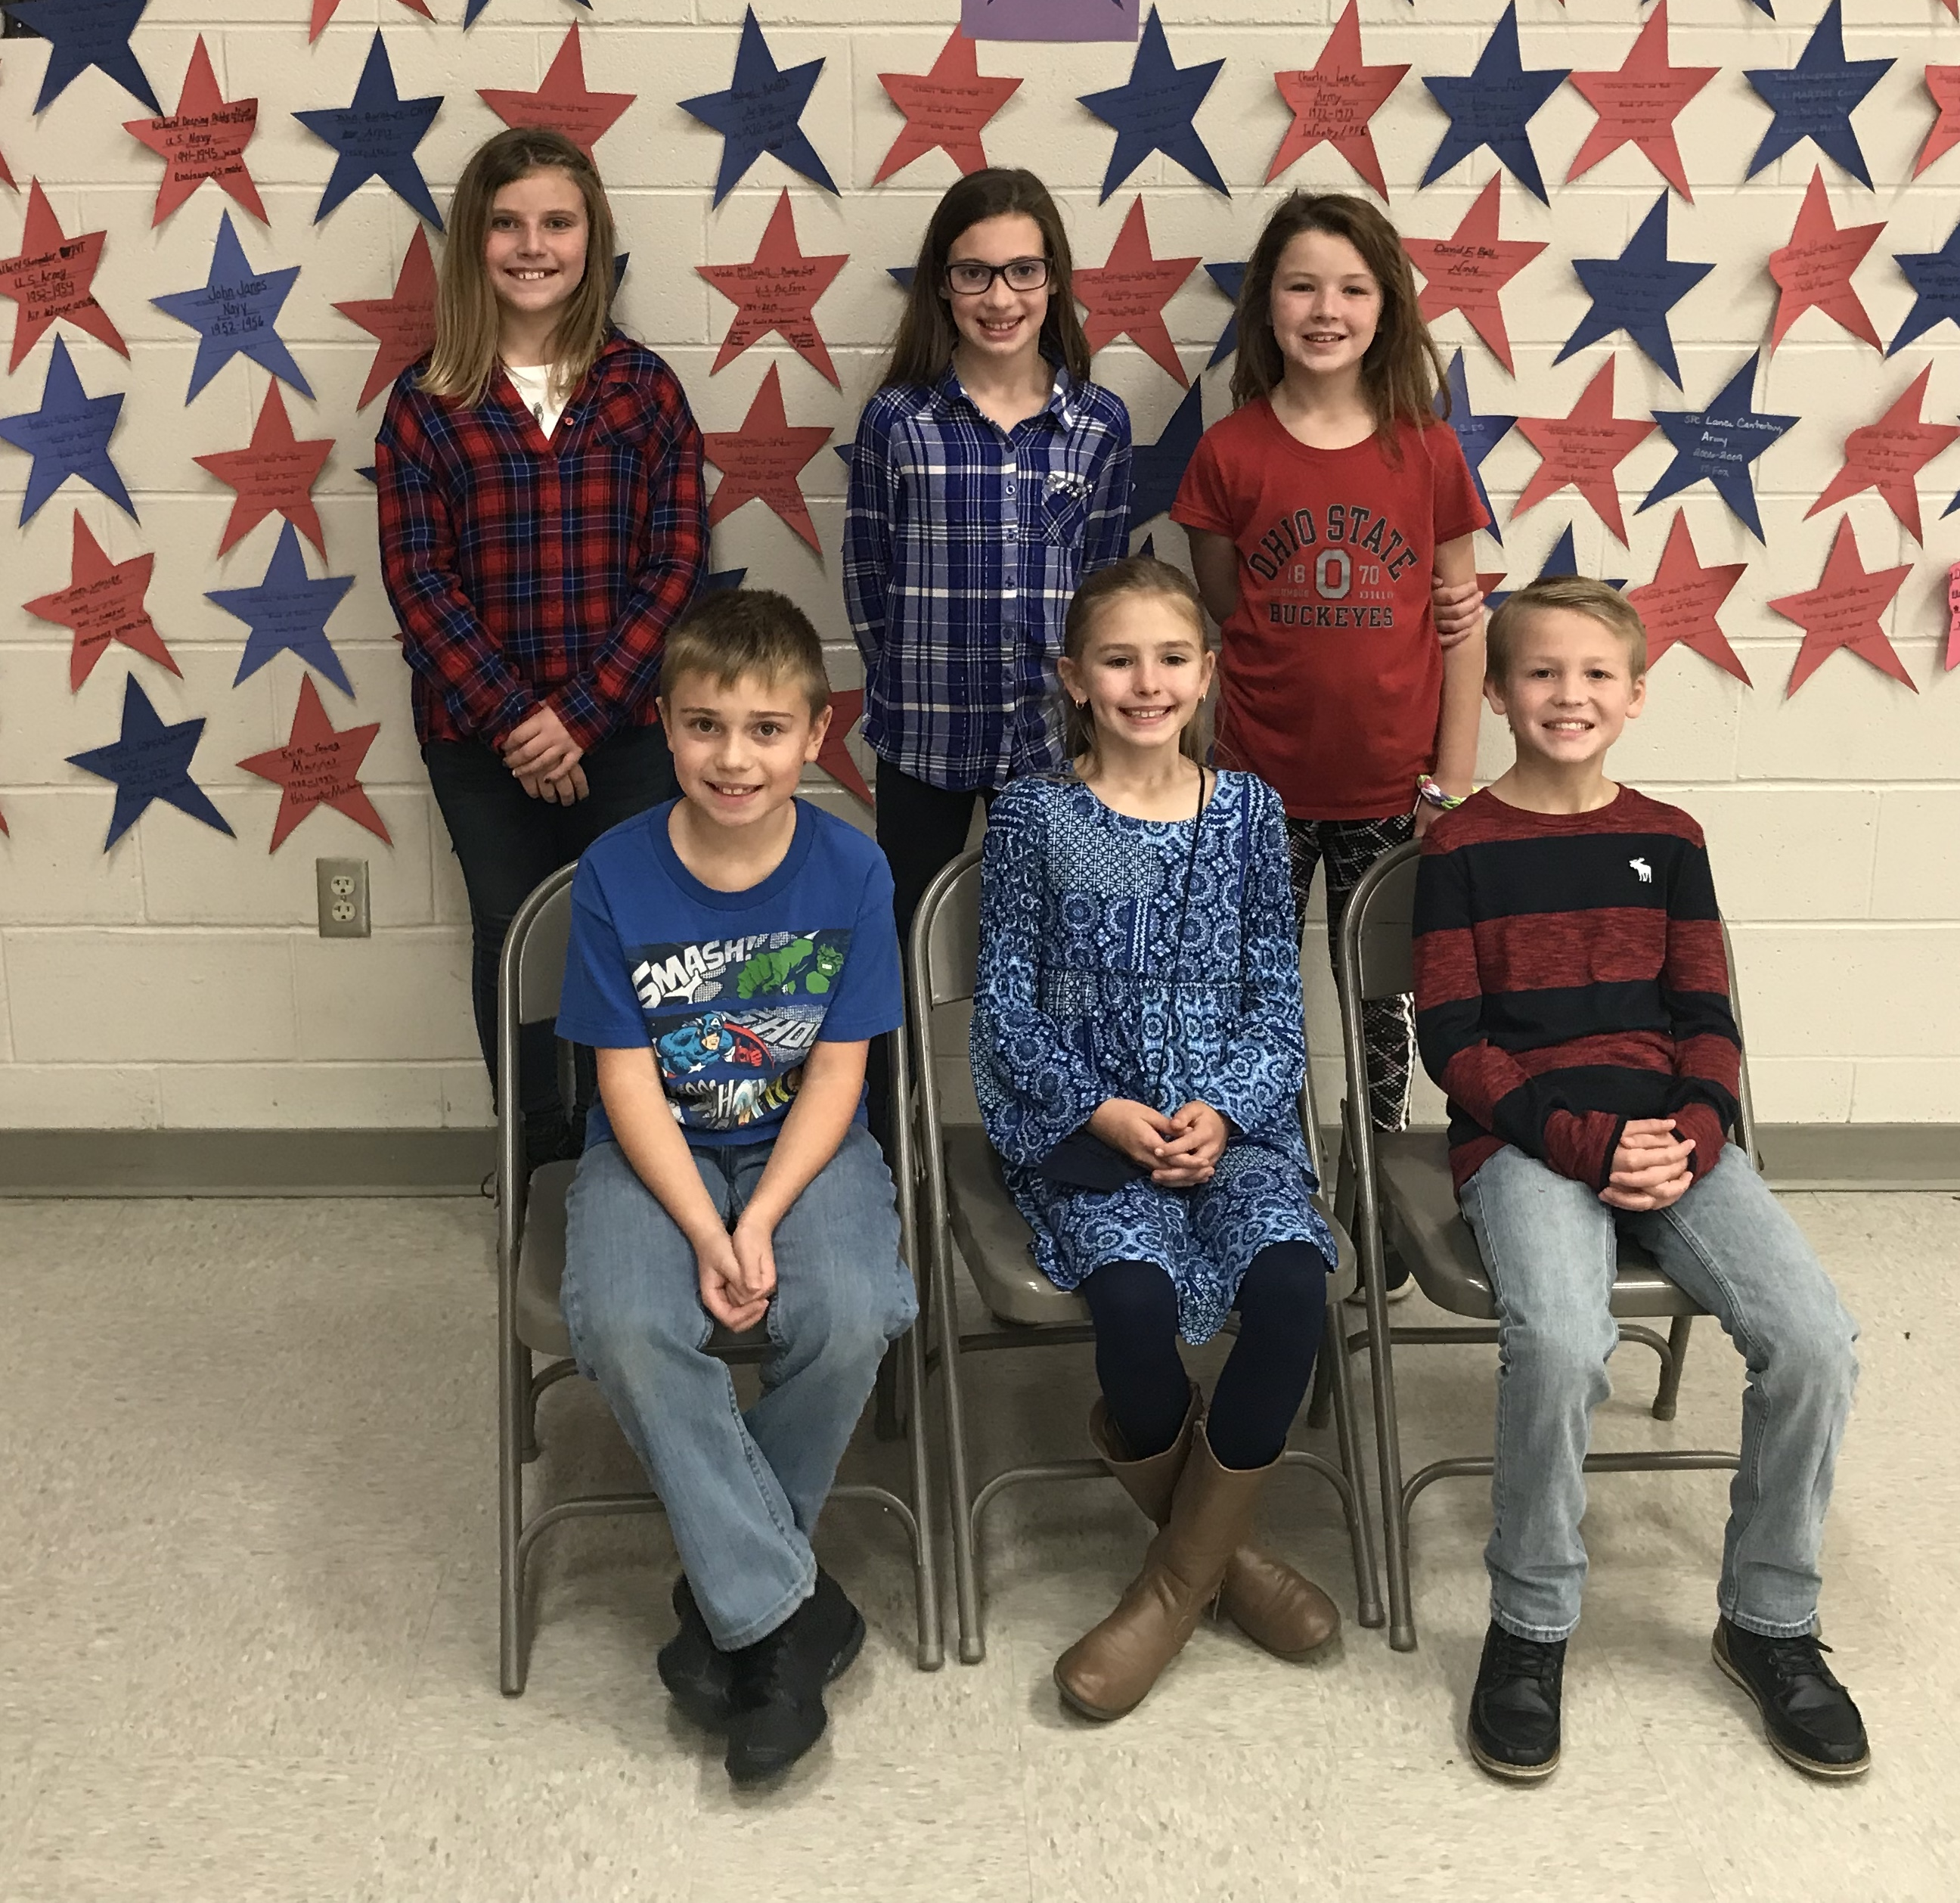 Veterans Day - Goup of girls and boys 3 standing and 3 sitting in front of red and blue paper stars